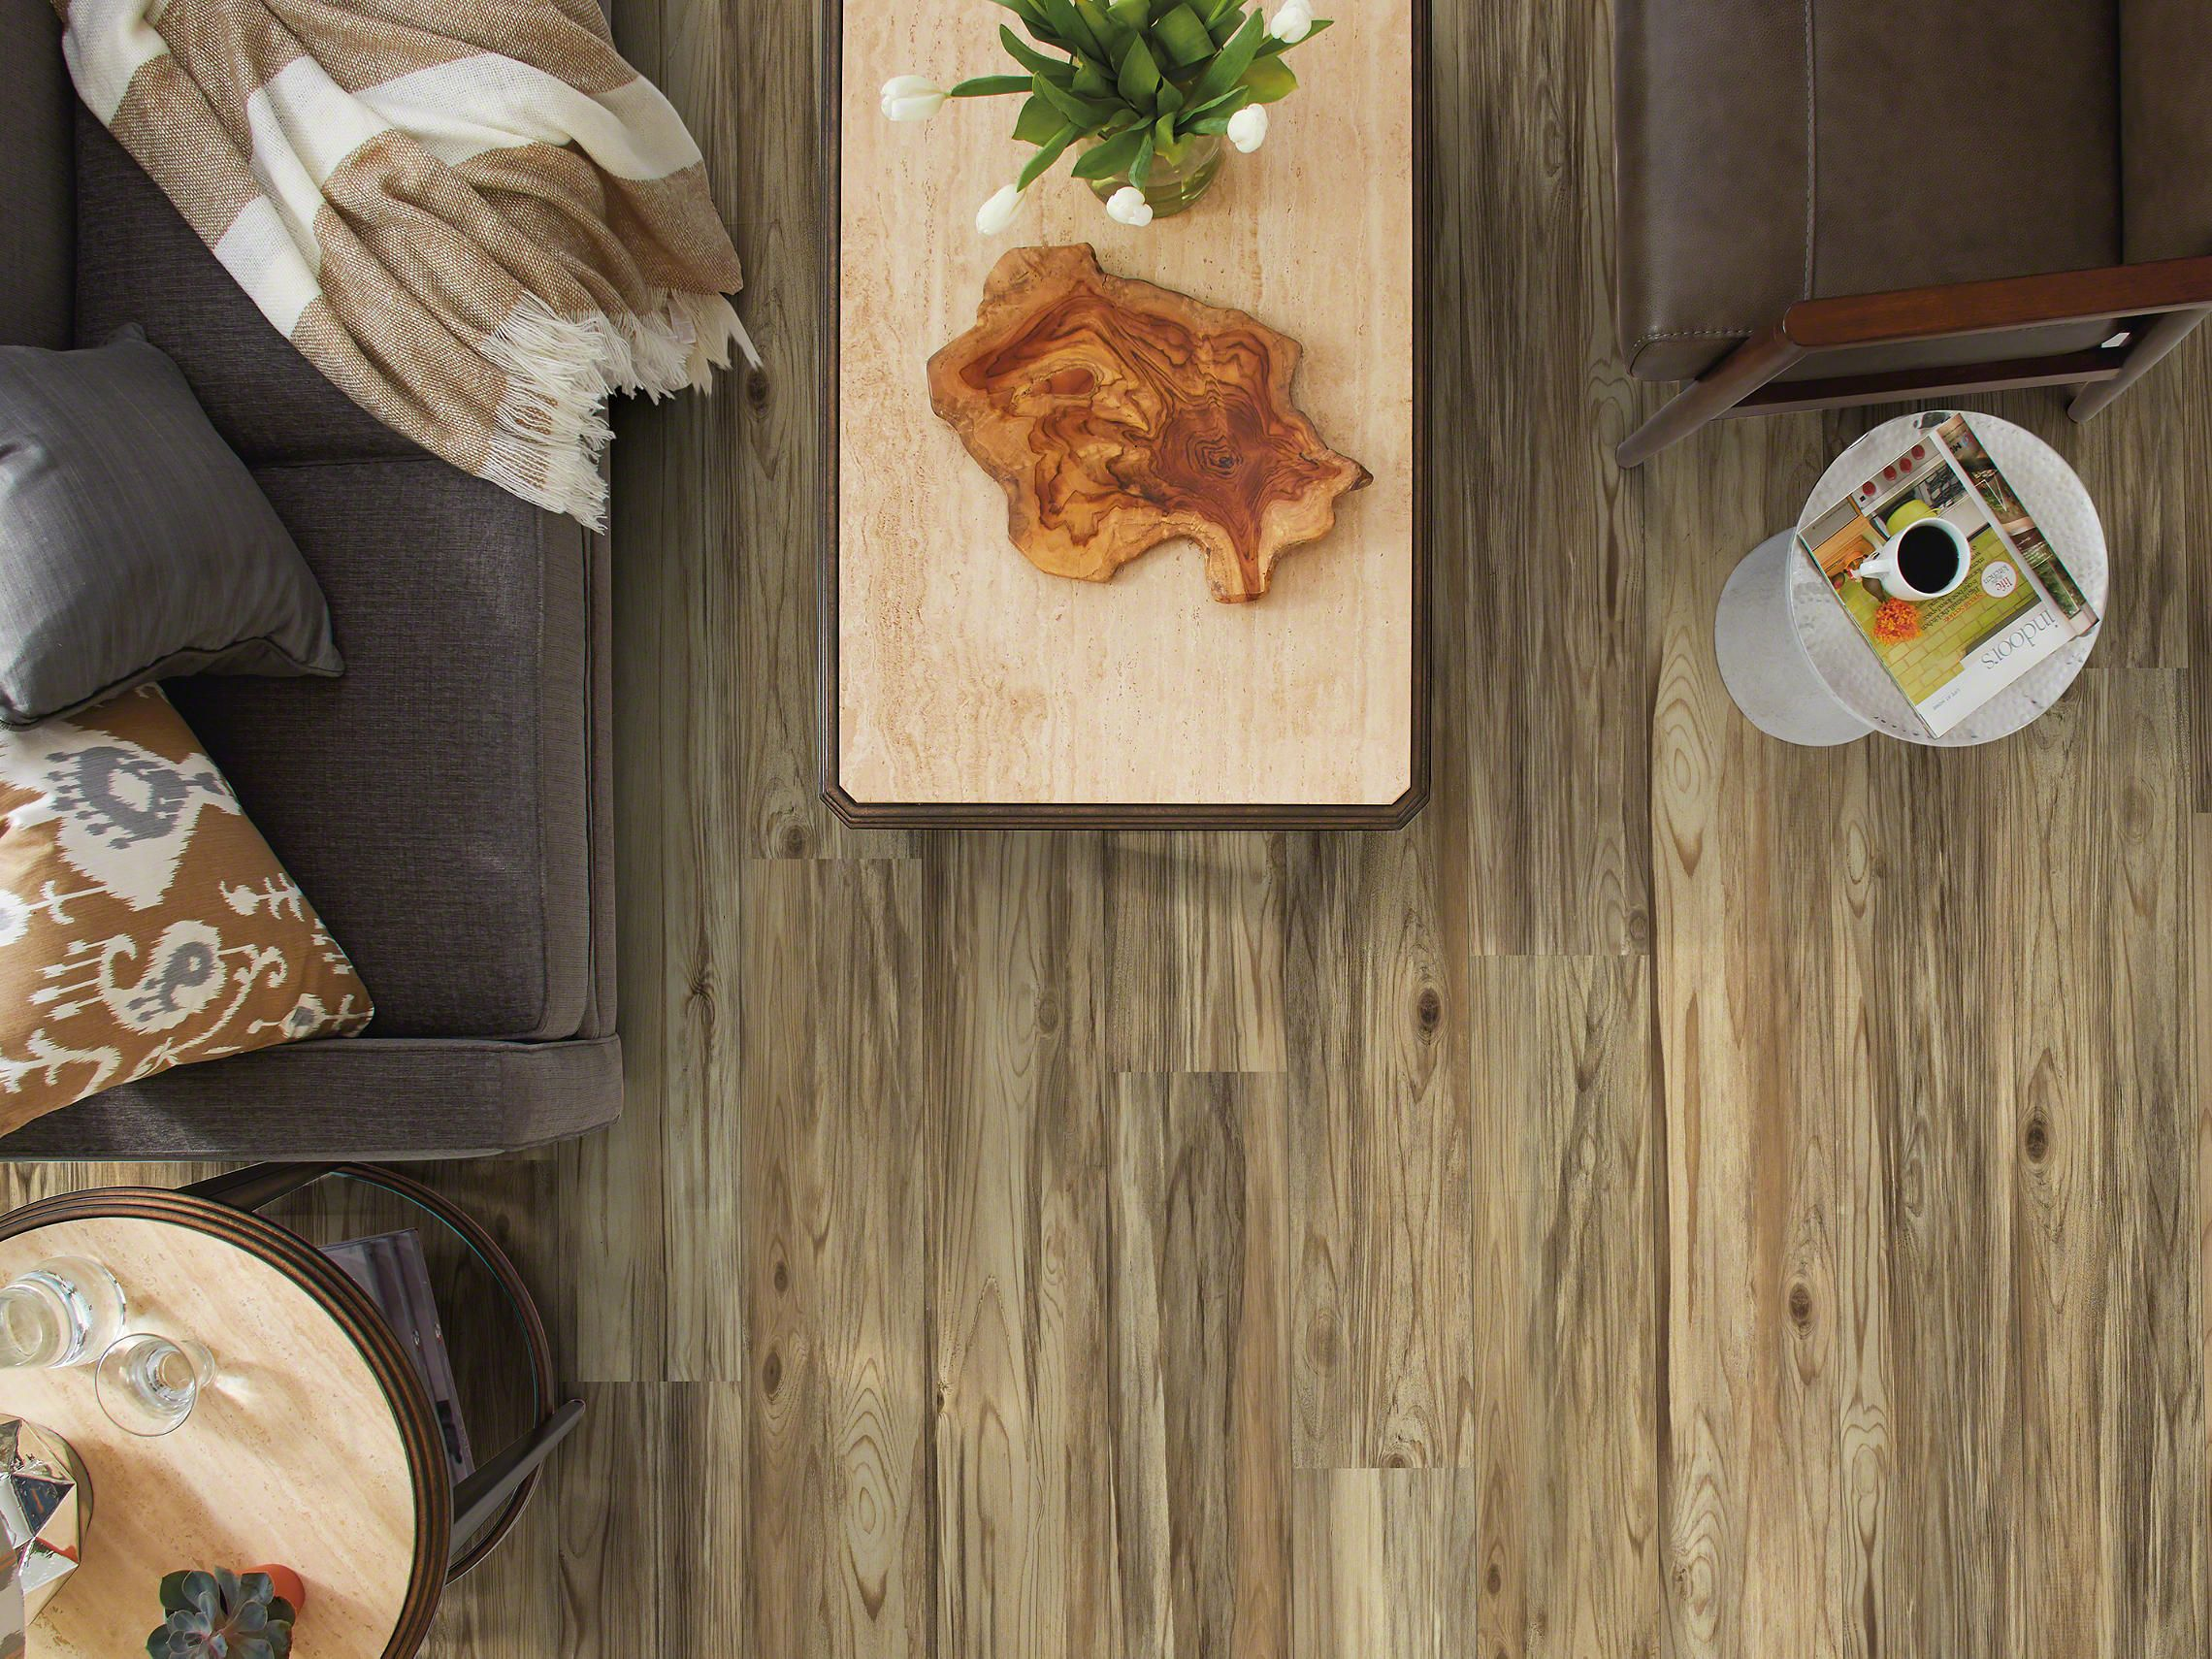 Make Photo Gallery Shaw us alto plank taburno resilient vinyl flooring is the modern choice for beautiful u durable floors Wide variety of patterns u colors